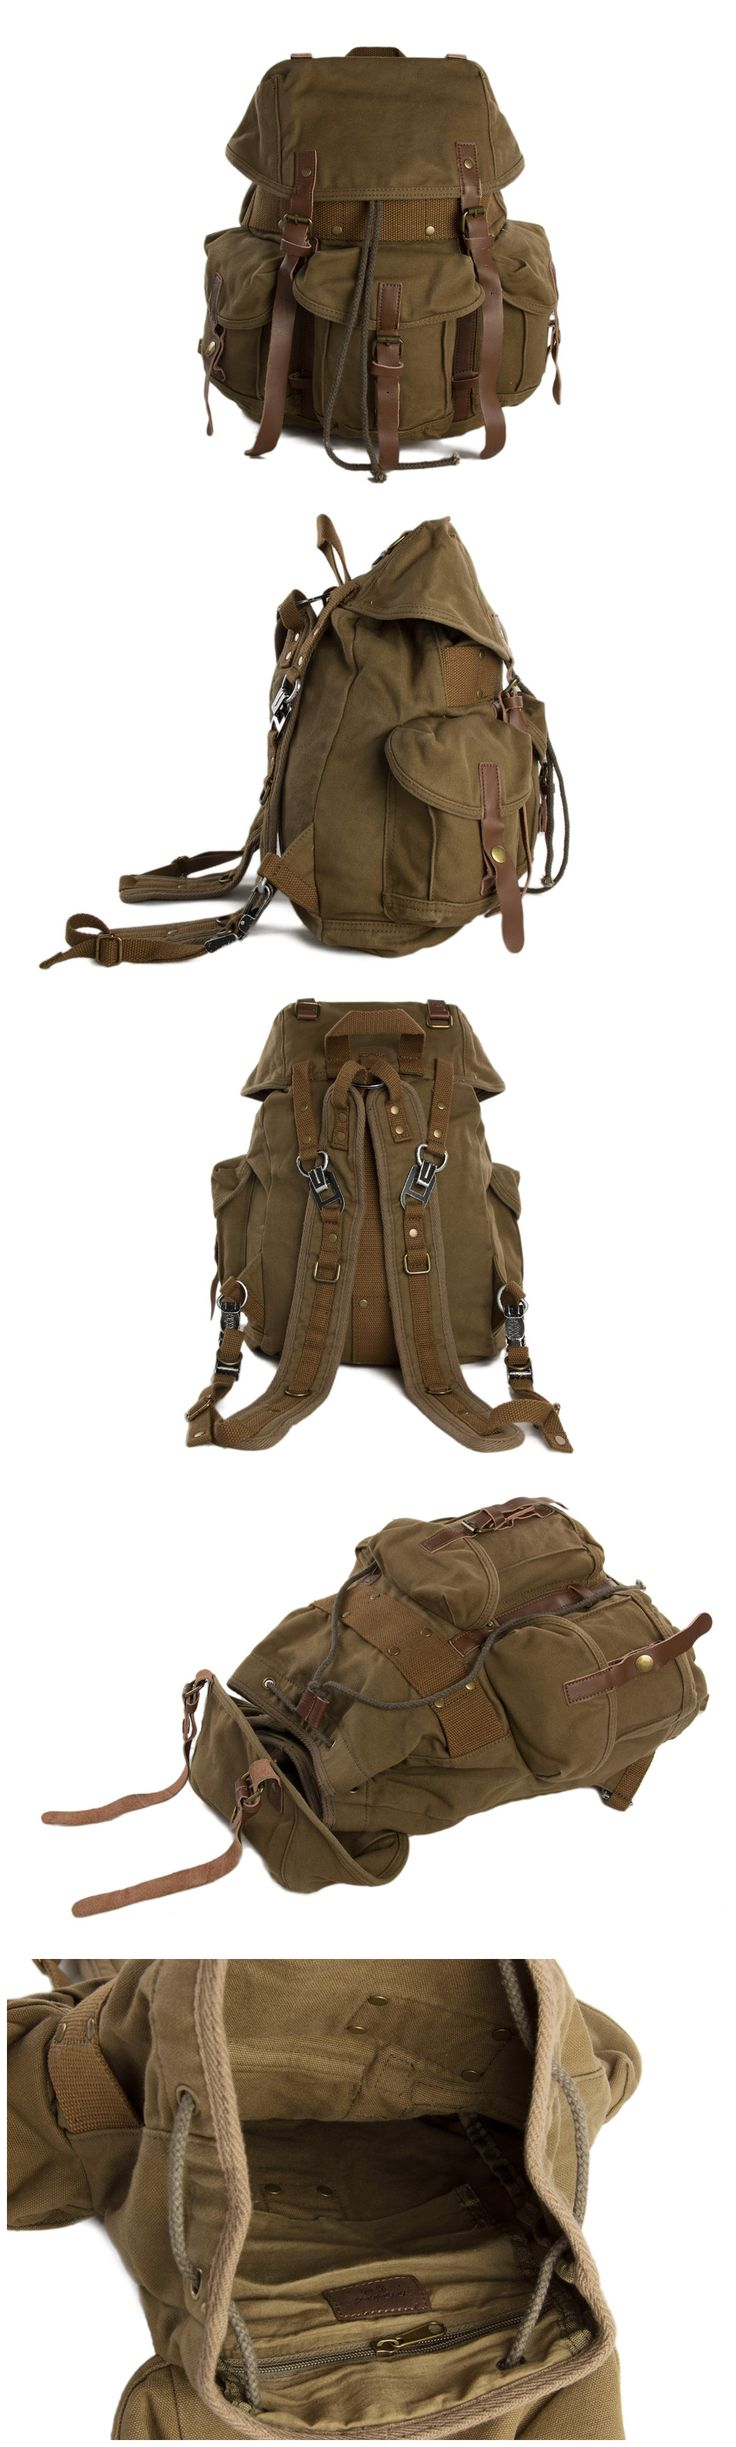 Canvas Backpack, School Backpack, Rucksack  http://ebagsbackpack.tumblr.com/